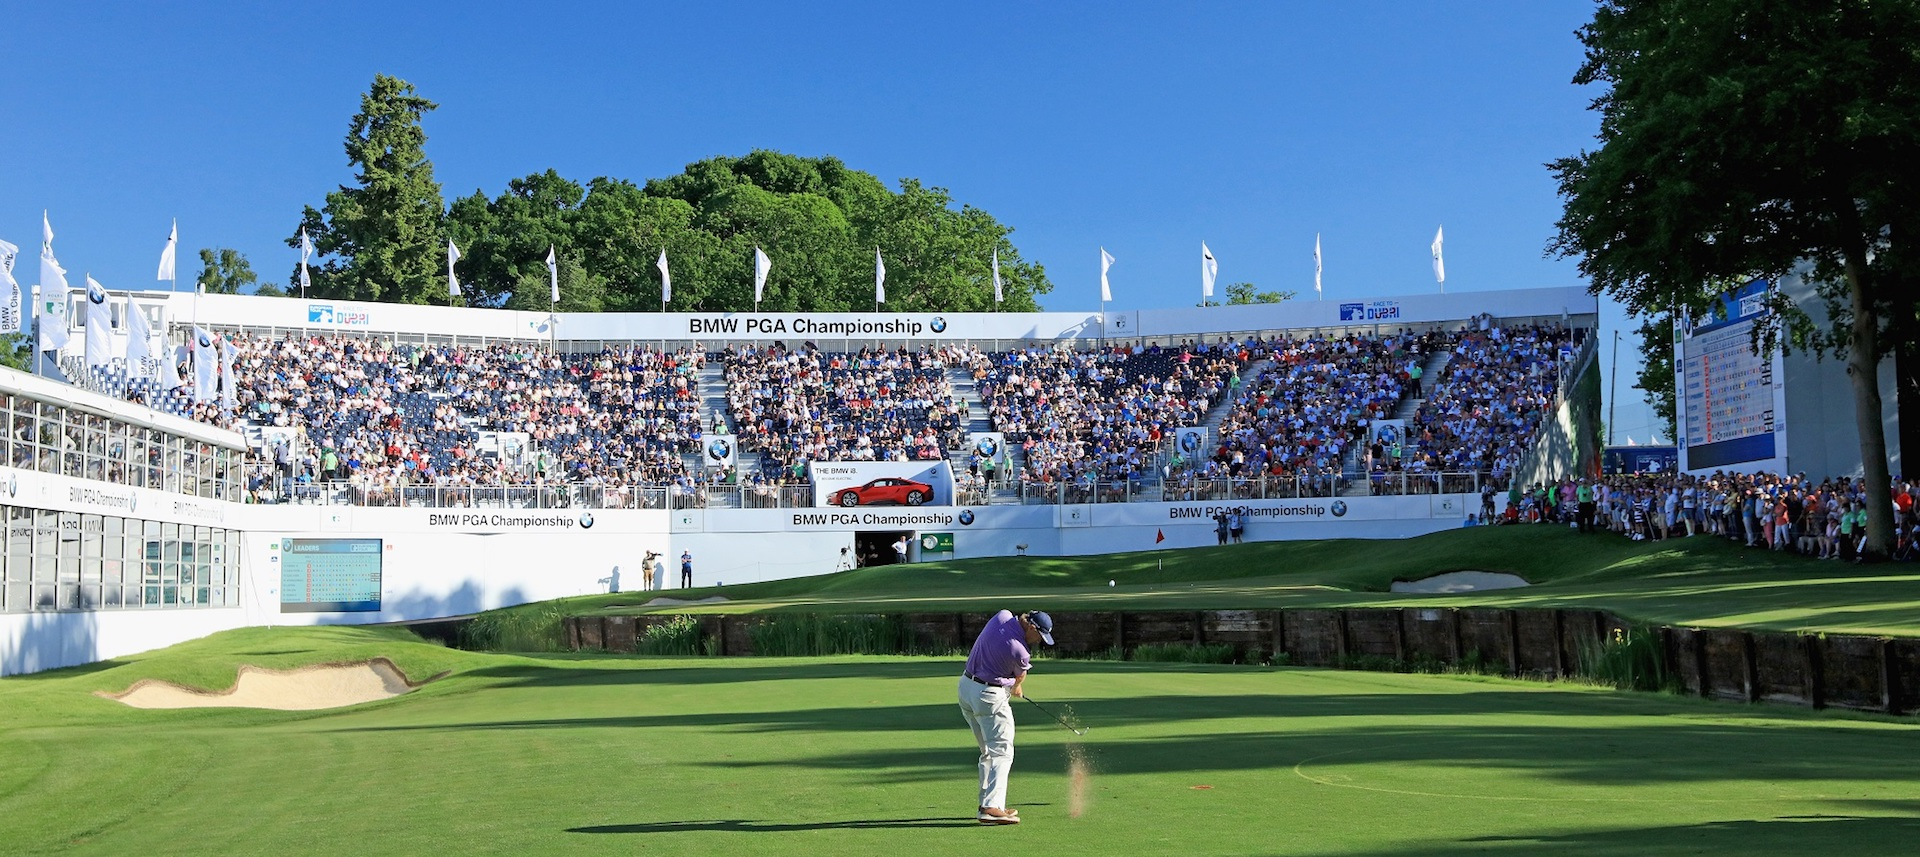 BMW PGA Championship Day 3 tee times and pairings